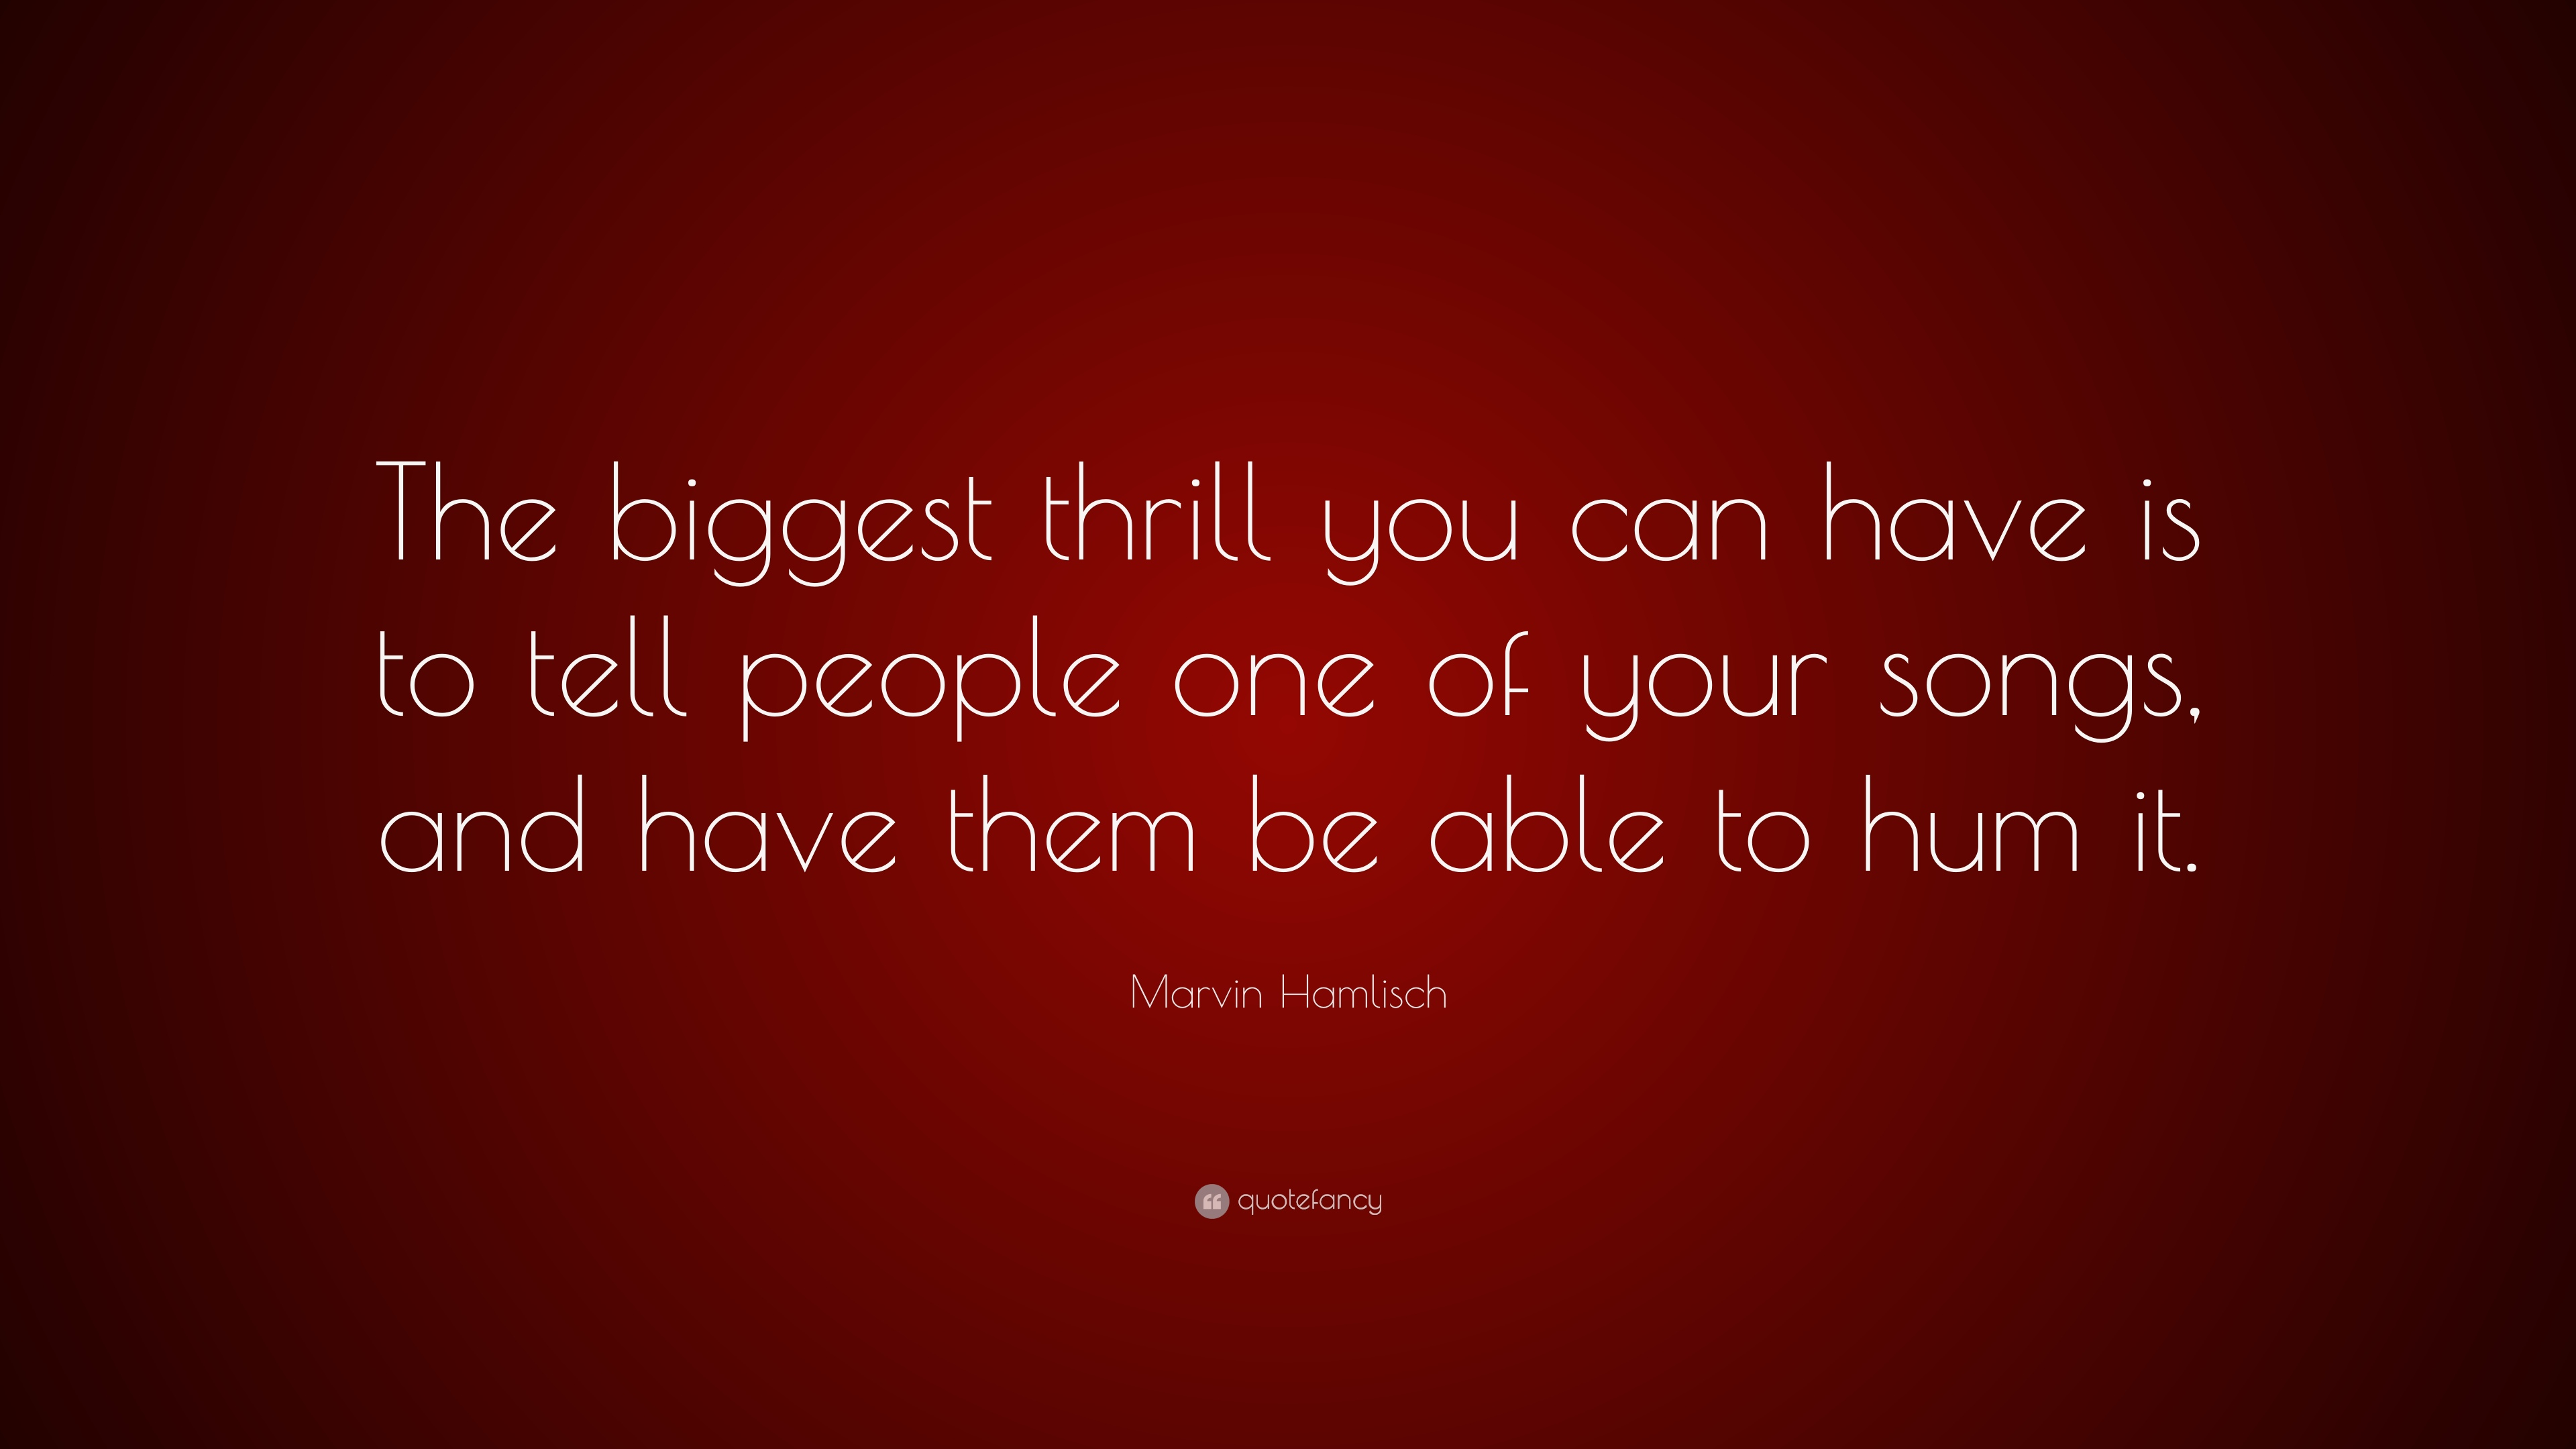 marvin hamlisch quote the biggest thrill you can have is to tell